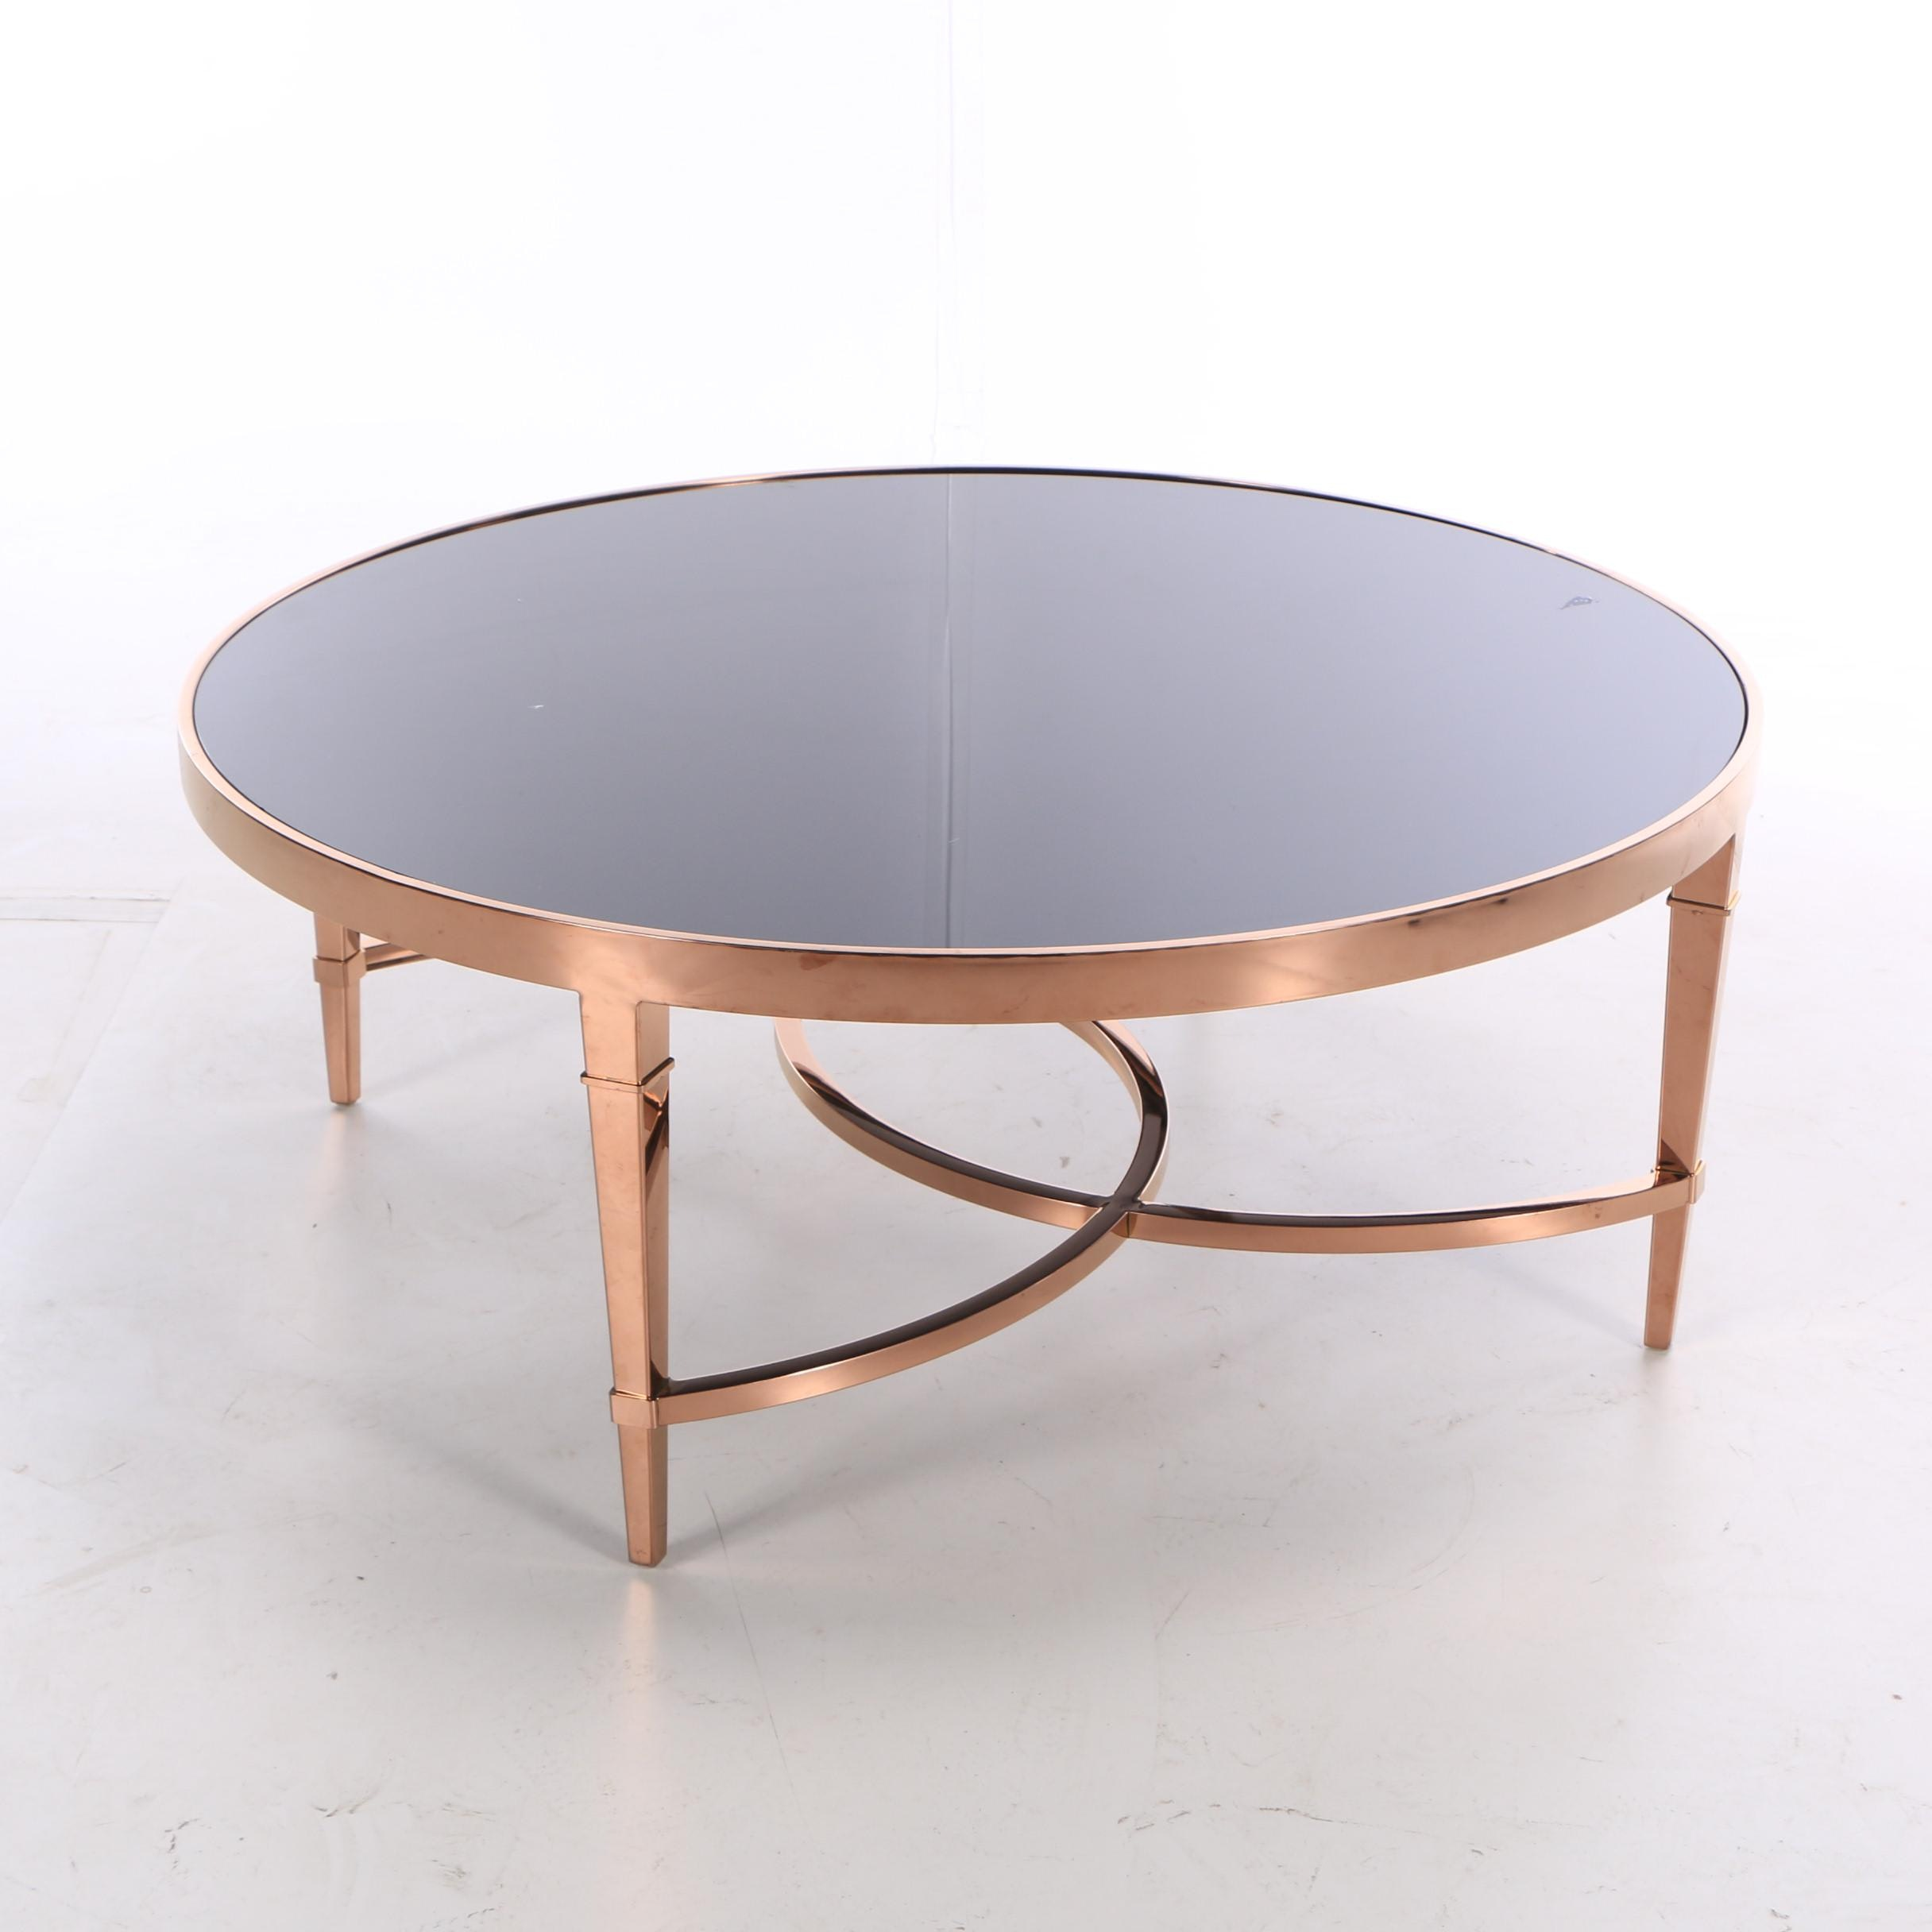 Hollywood Regency Style Smoked Glass and Metal Table, 21st Century